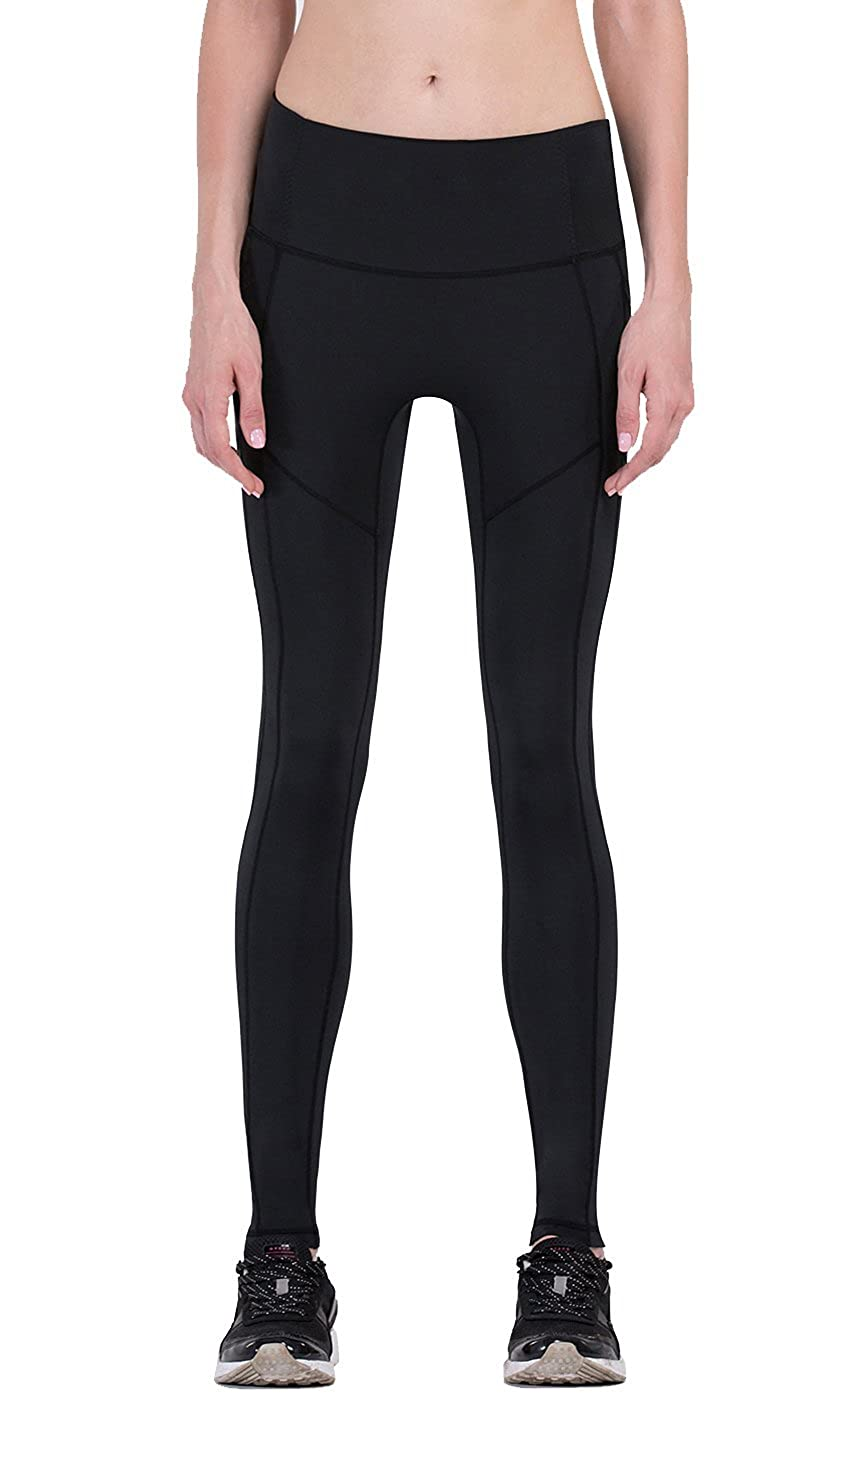 7bb6ffb427686 Fringoo ® Women s Compression Leggings Workout Tights Running Fitness  Pillates Yoga Pants Base Layer Bottom S M L XL ☆ BEST QUALITY GUARANTEED ...